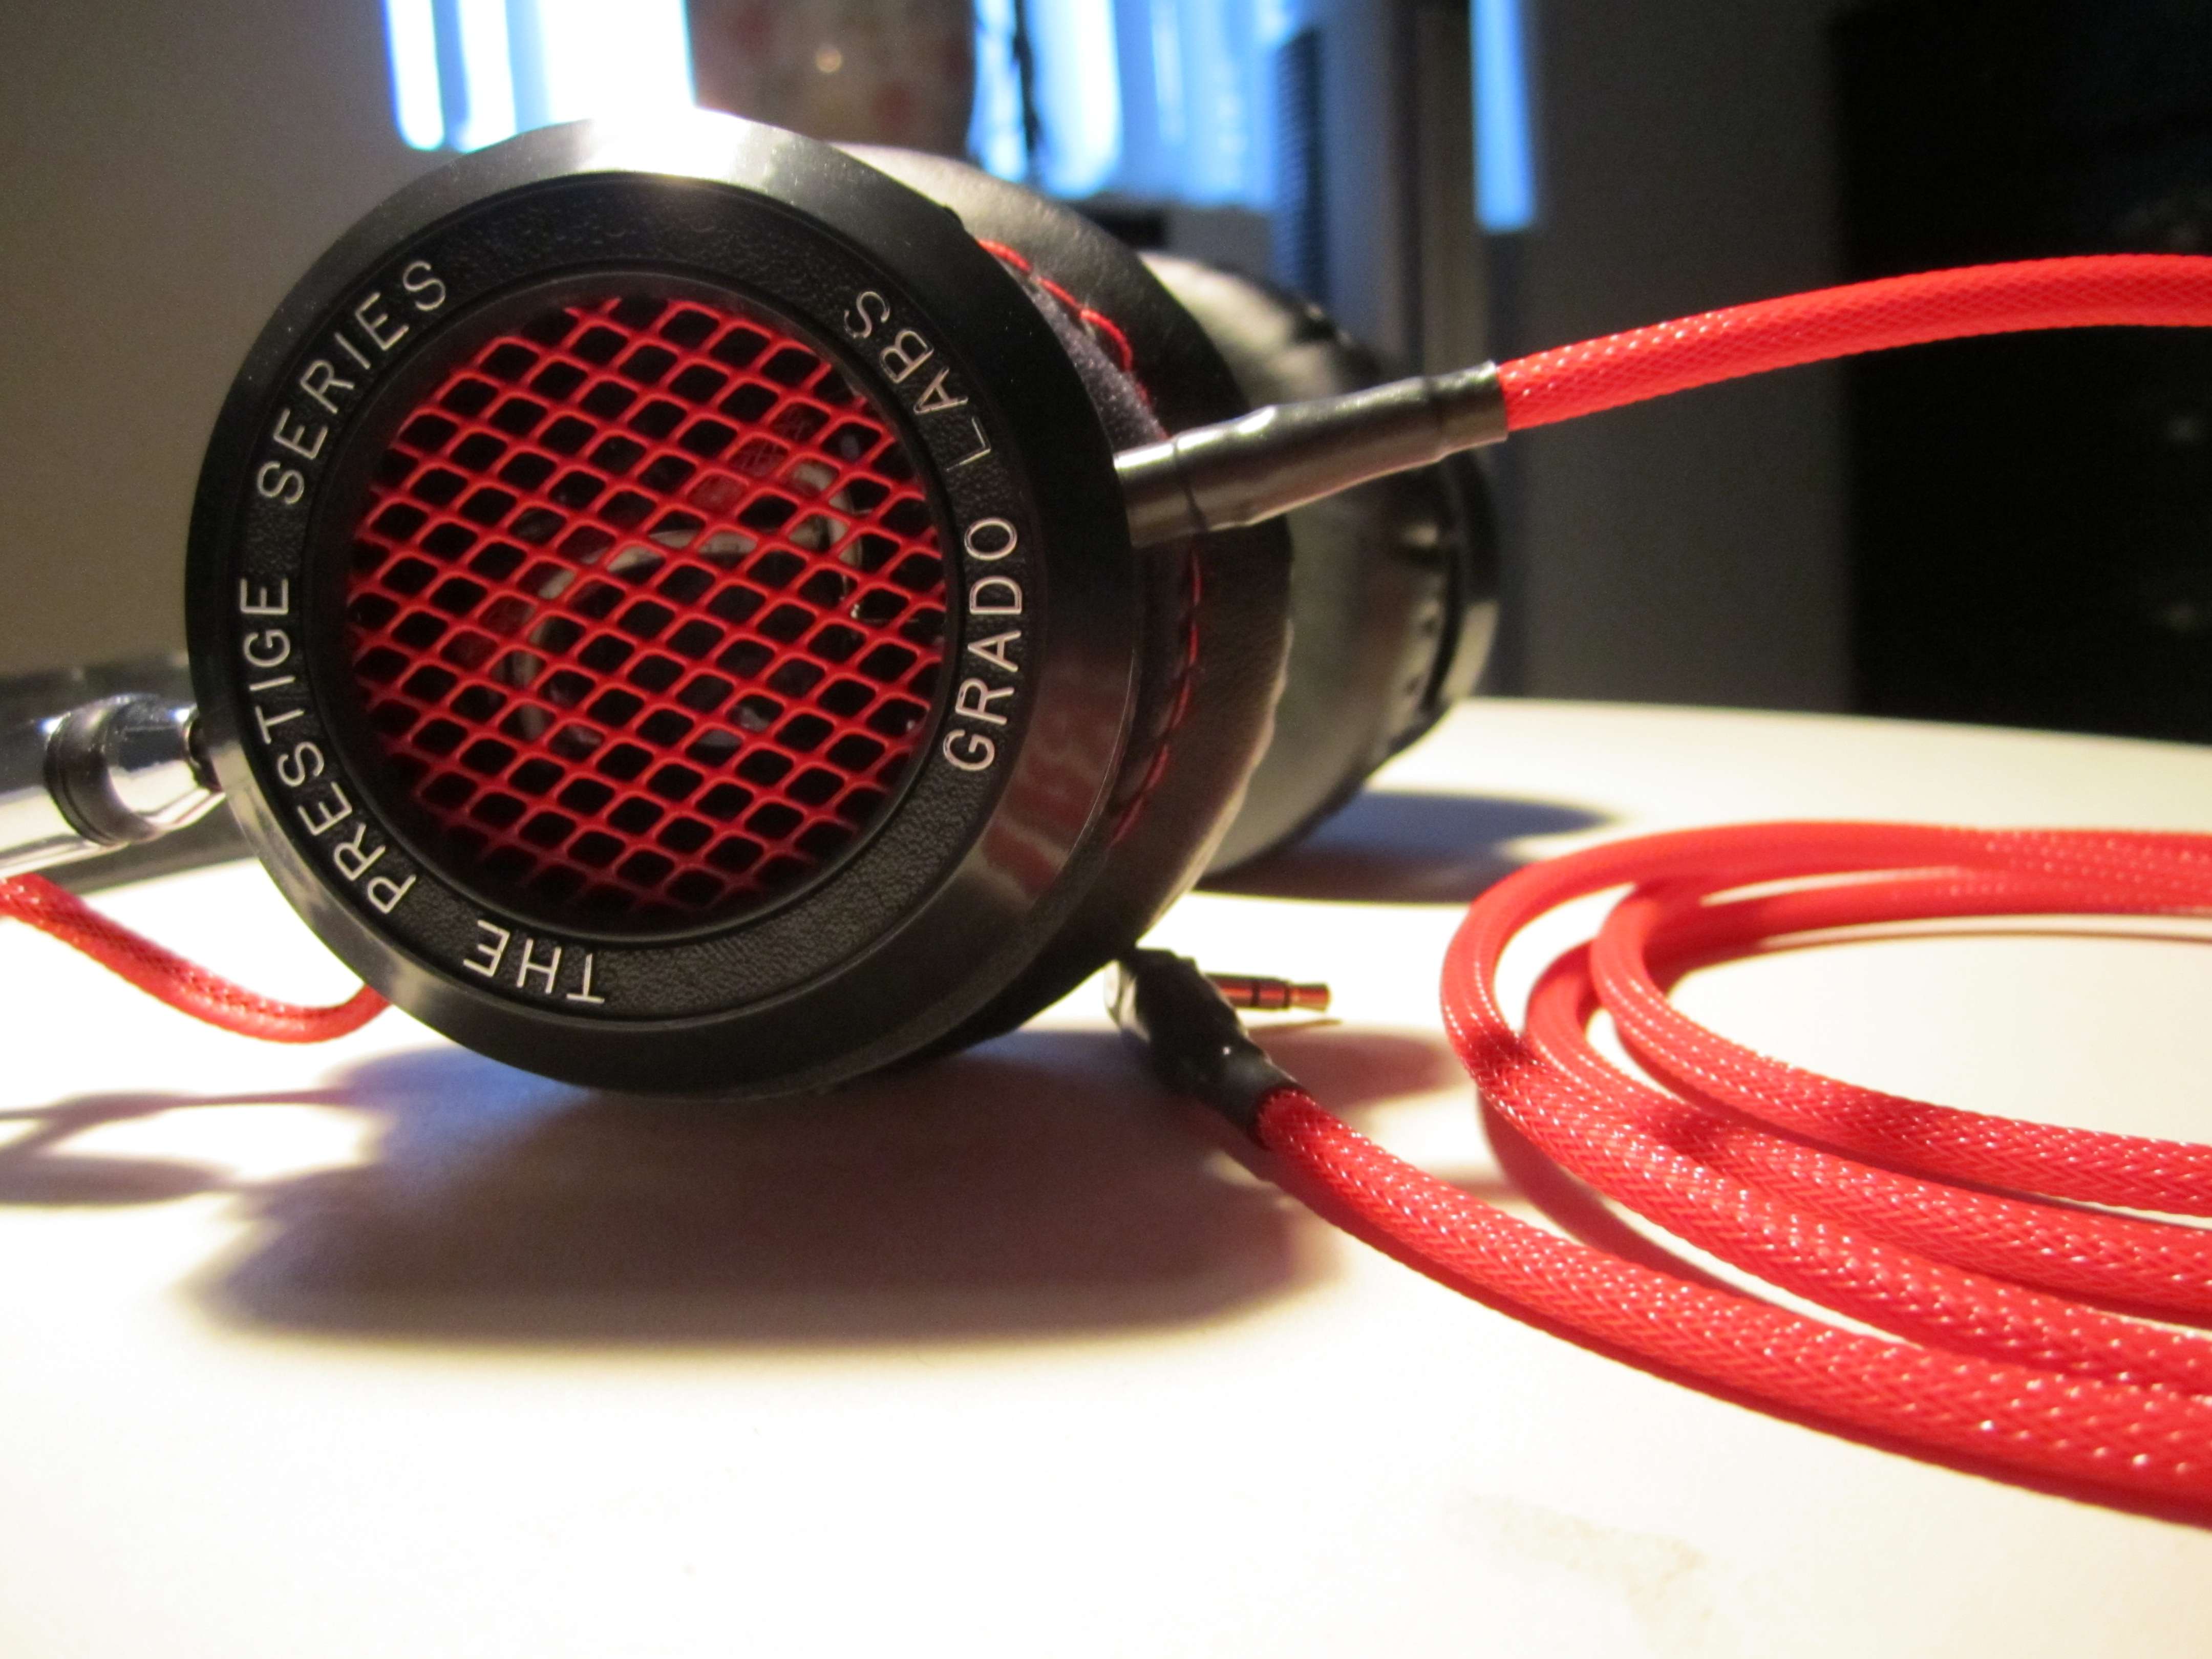 SR60-Mod | Page 88 | Headphone Reviews and Discussion - Head